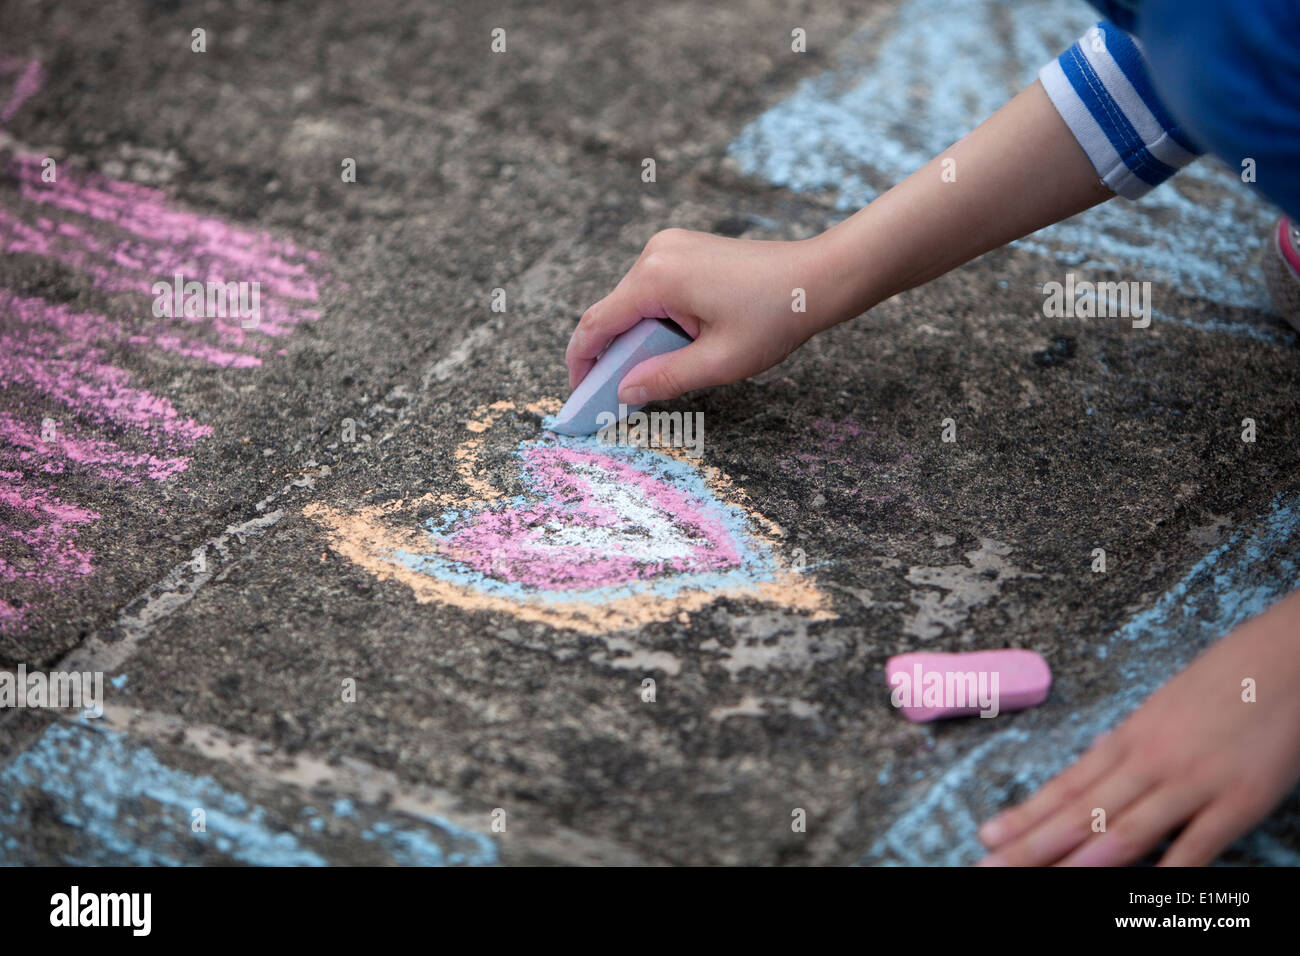 Young child drawing a colorful chalk heart on a stone sidewalk. - Stock Image